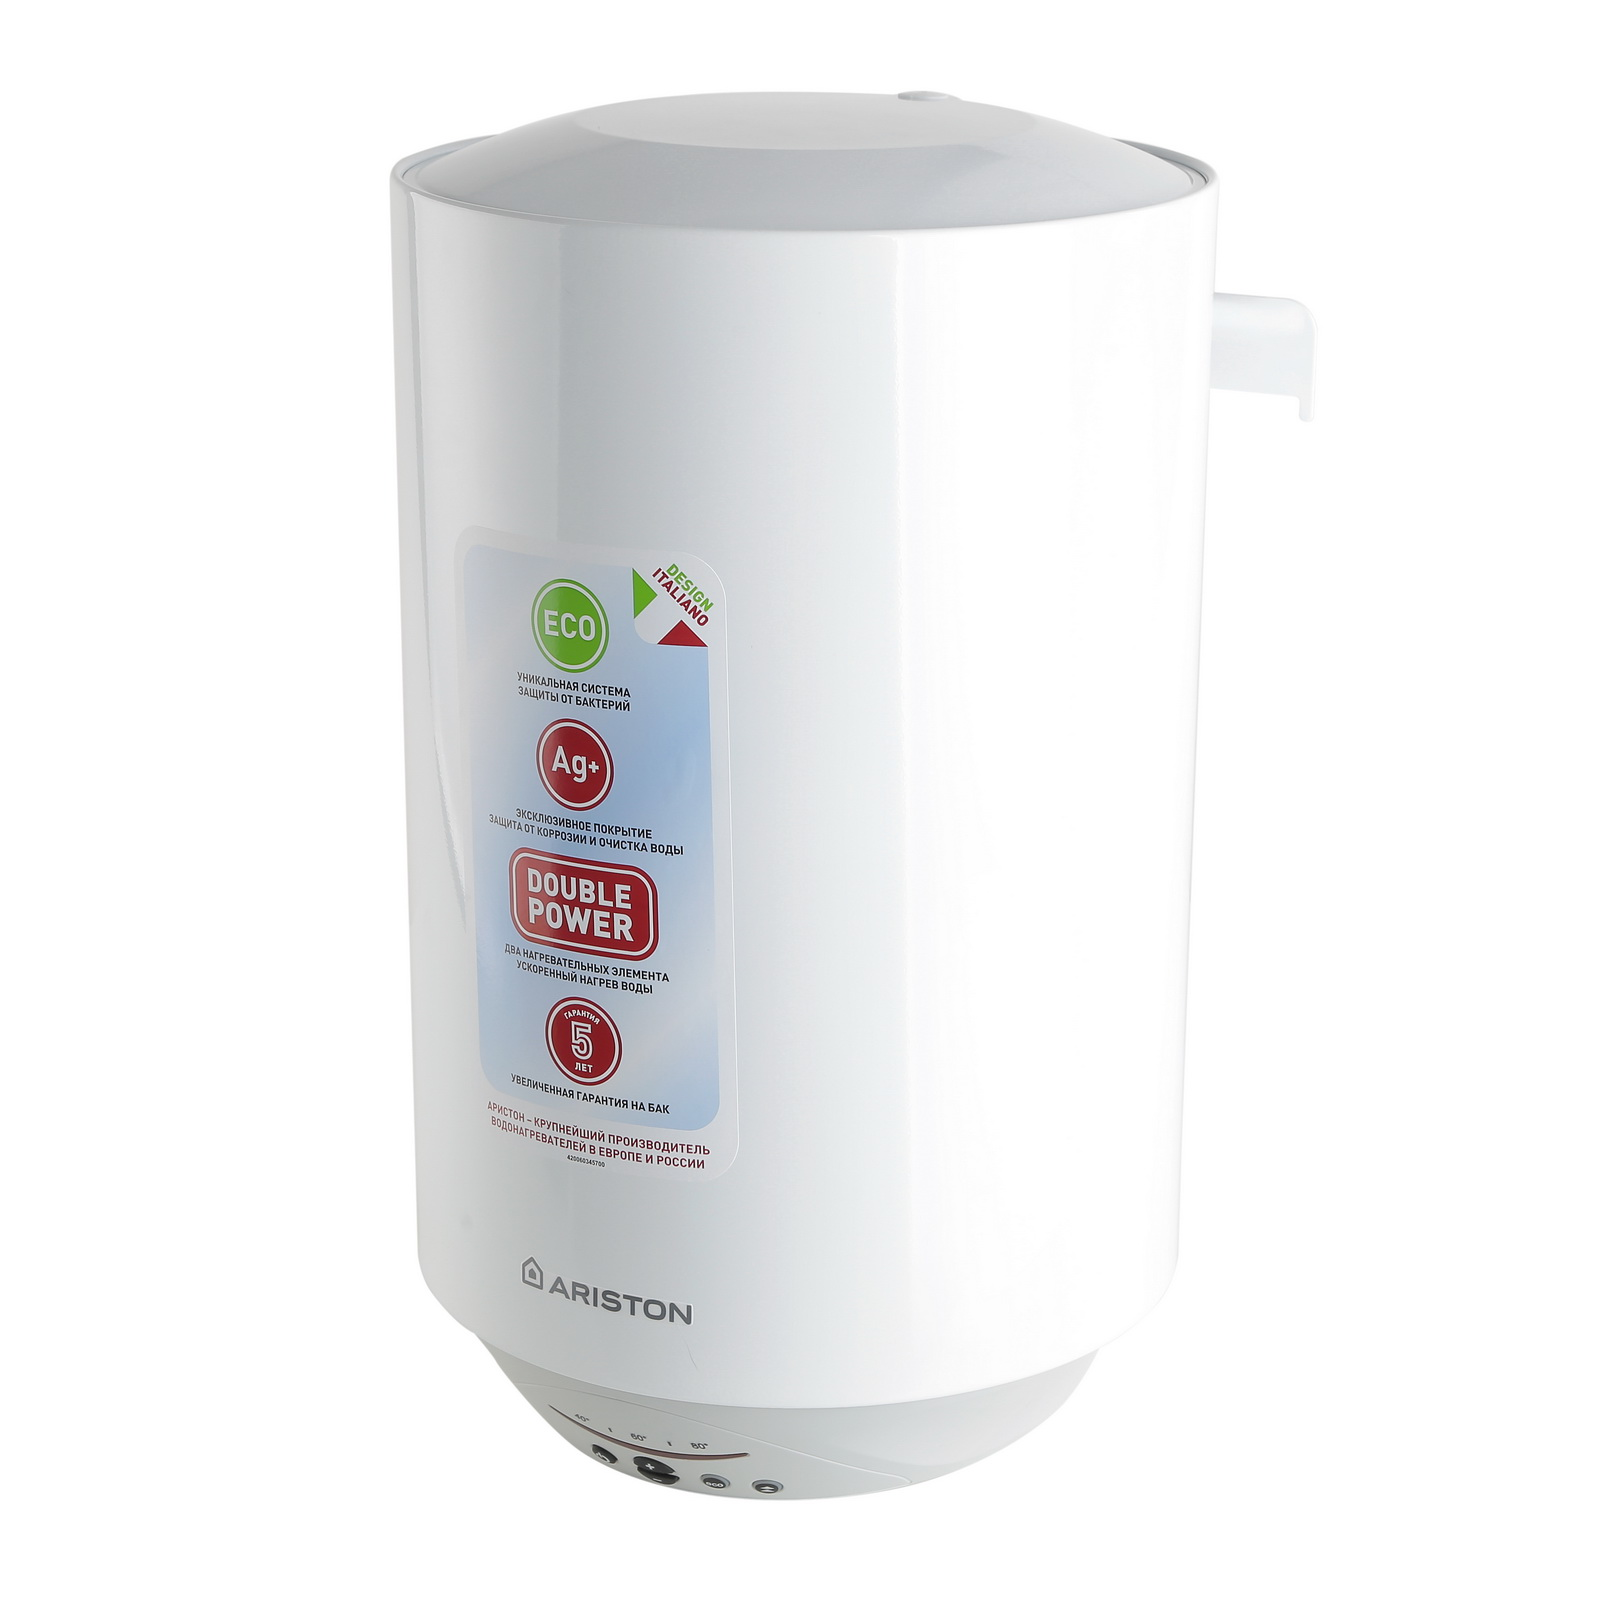 Водонагреватель Ariston Abs pro eco pw 30 v slim ariston abs pro eco pw 120 v